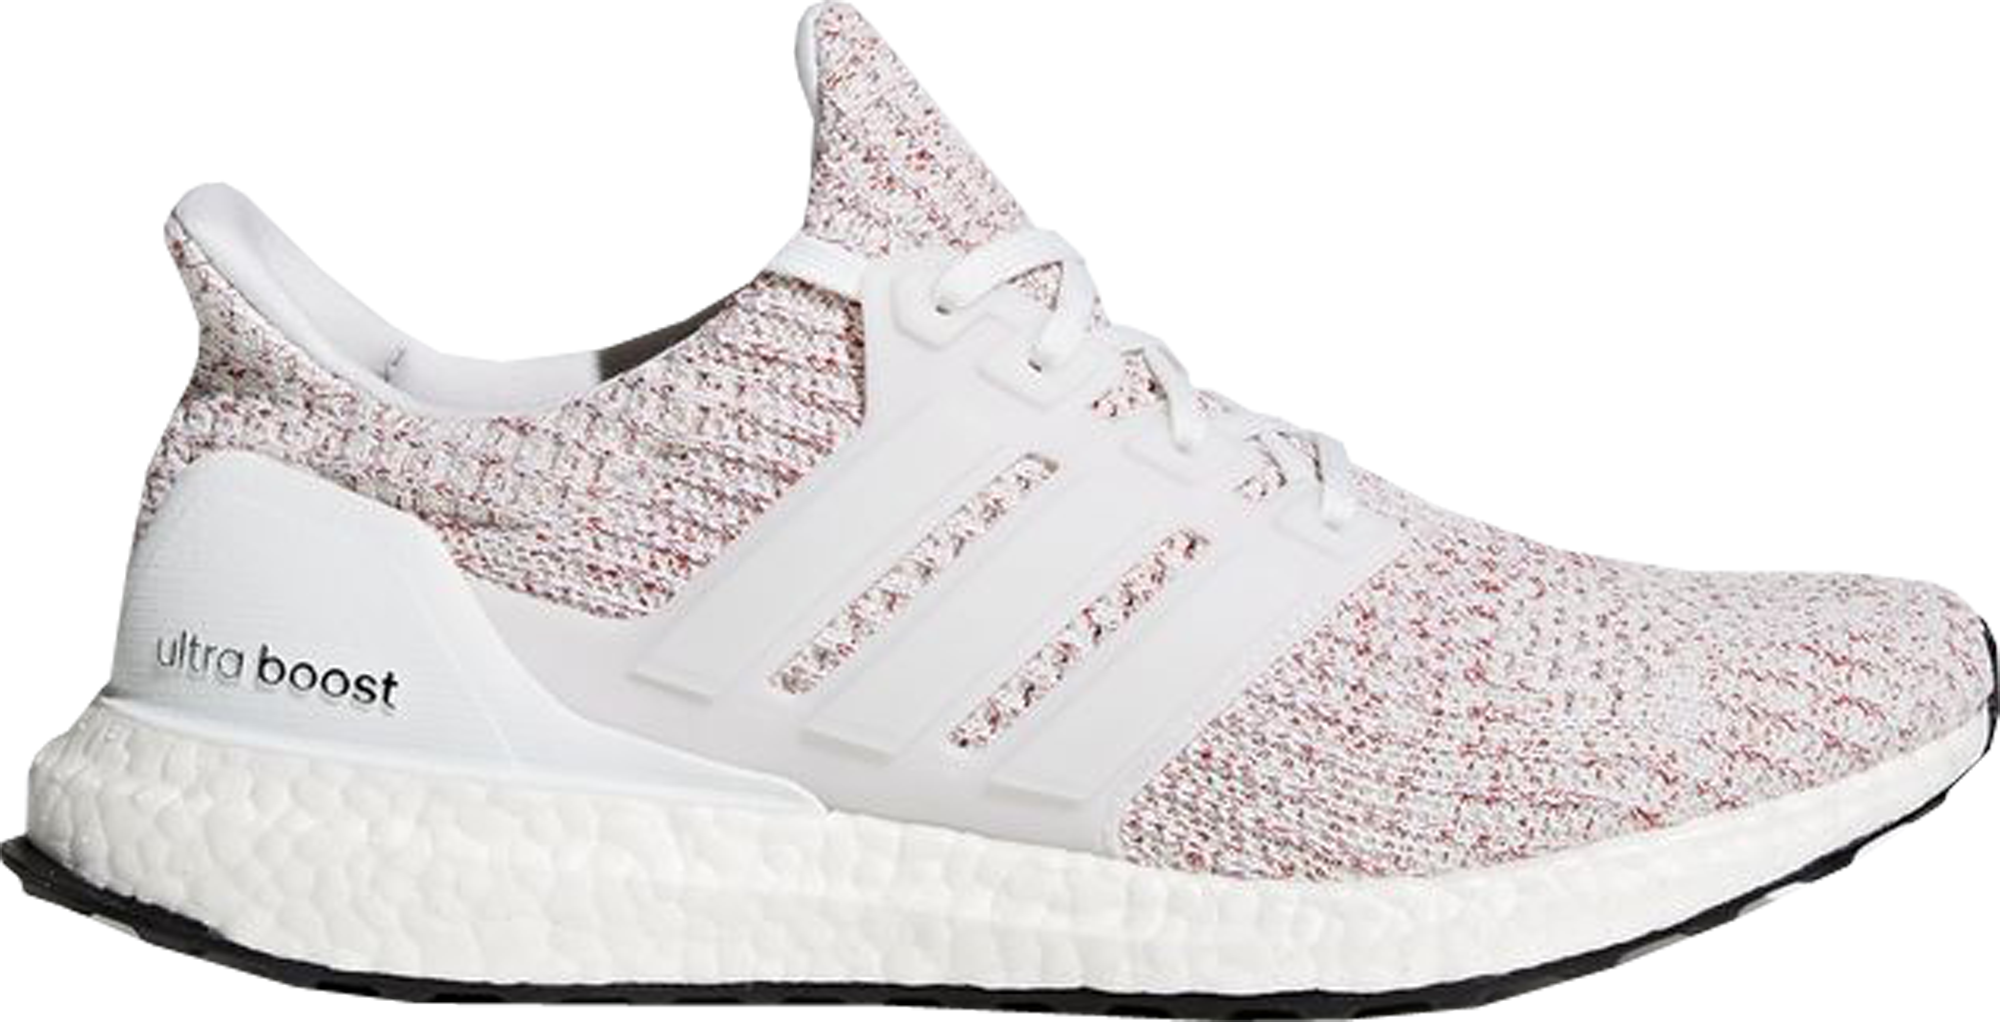 Adidas Boost Candy Cane bb6169 ultra